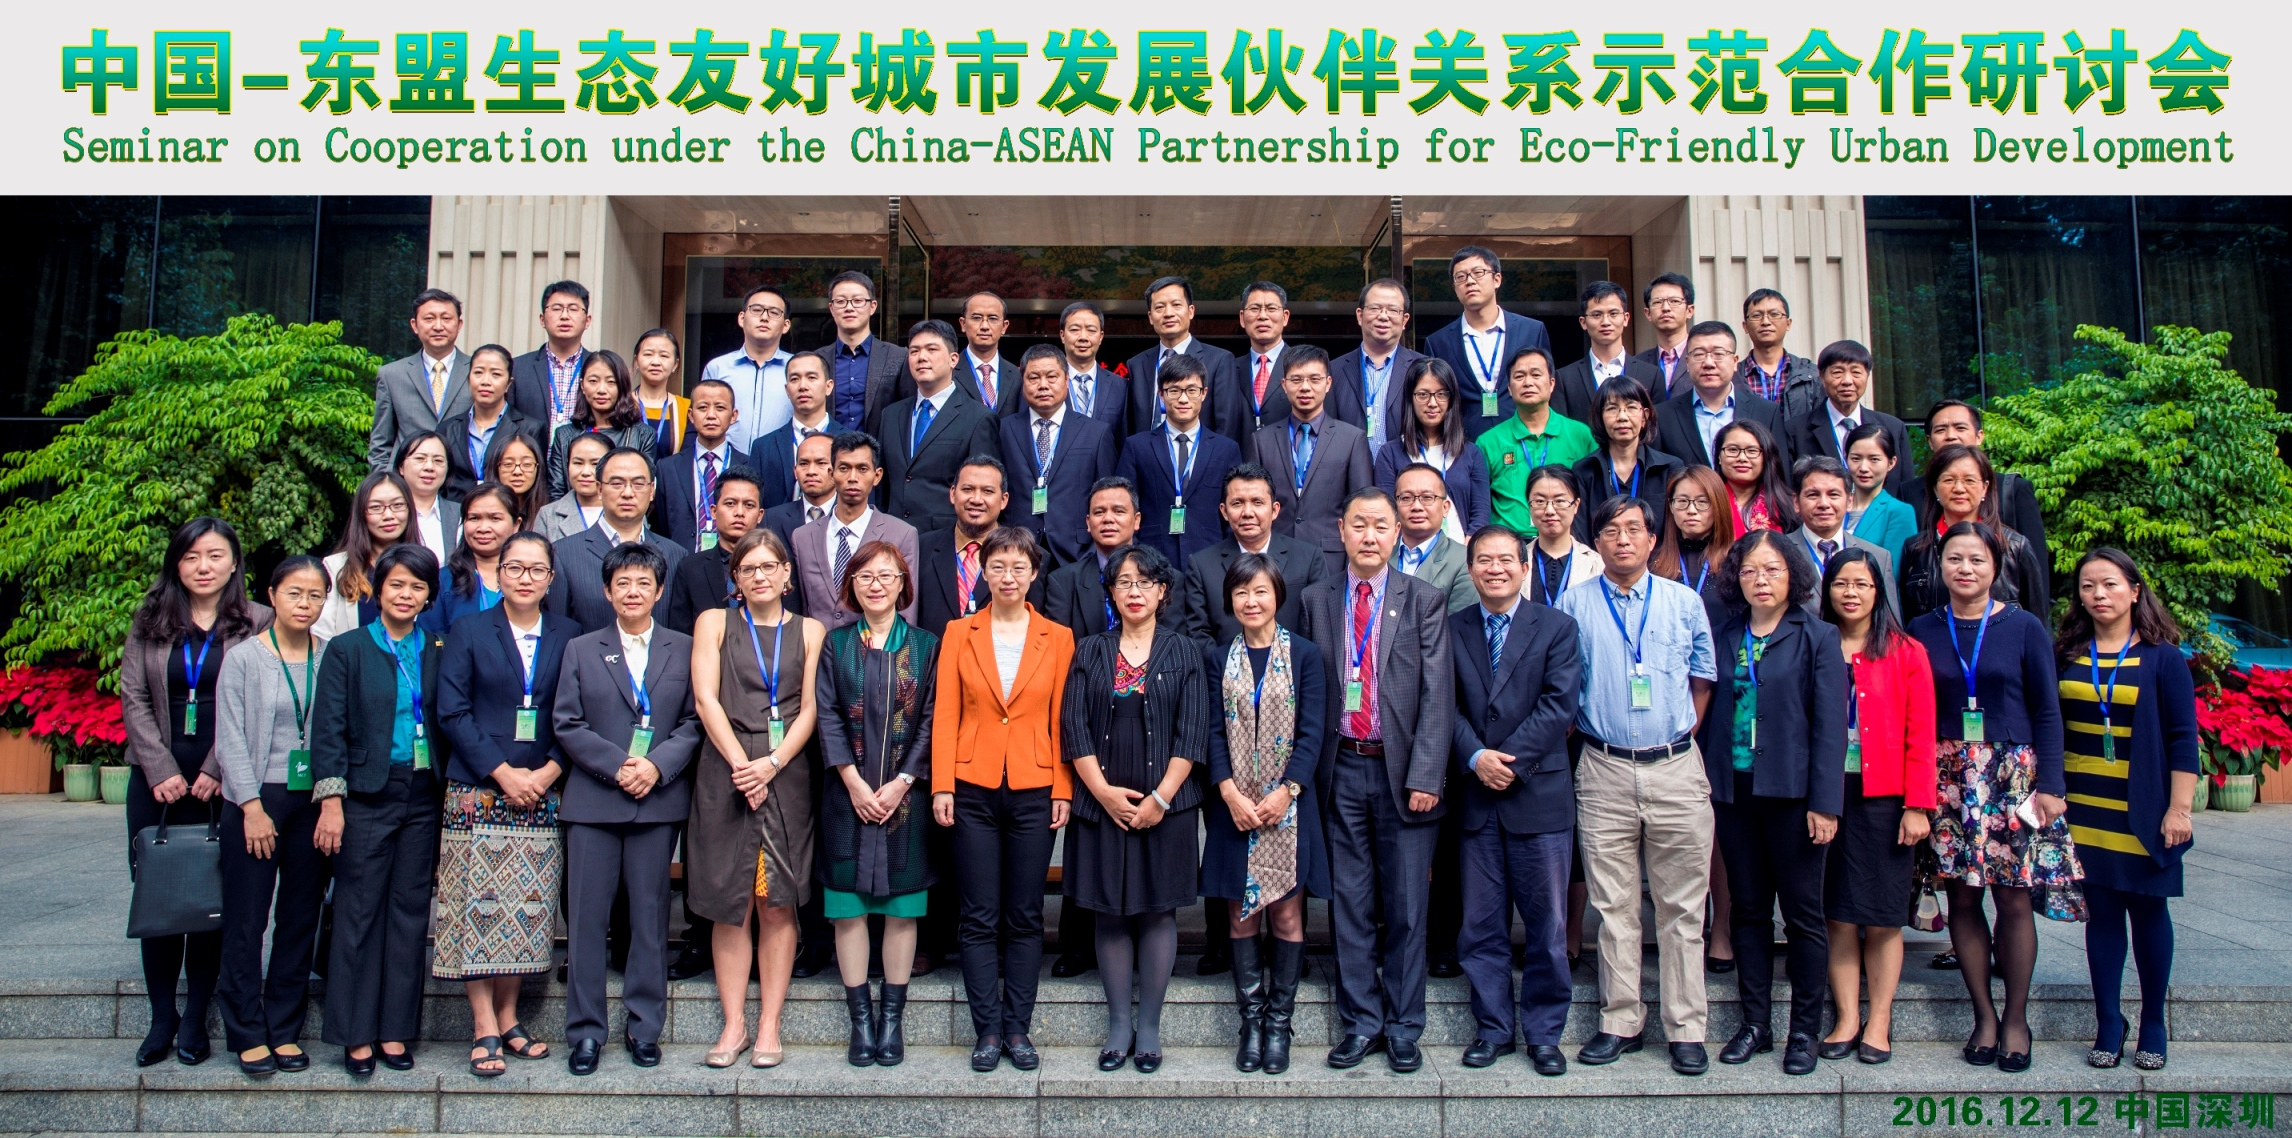 A group photo of participants in the Seminar on Cooperation under the China-ASEAN Partnership for Ecologically Friendly Urban Development (provided by the organizer).